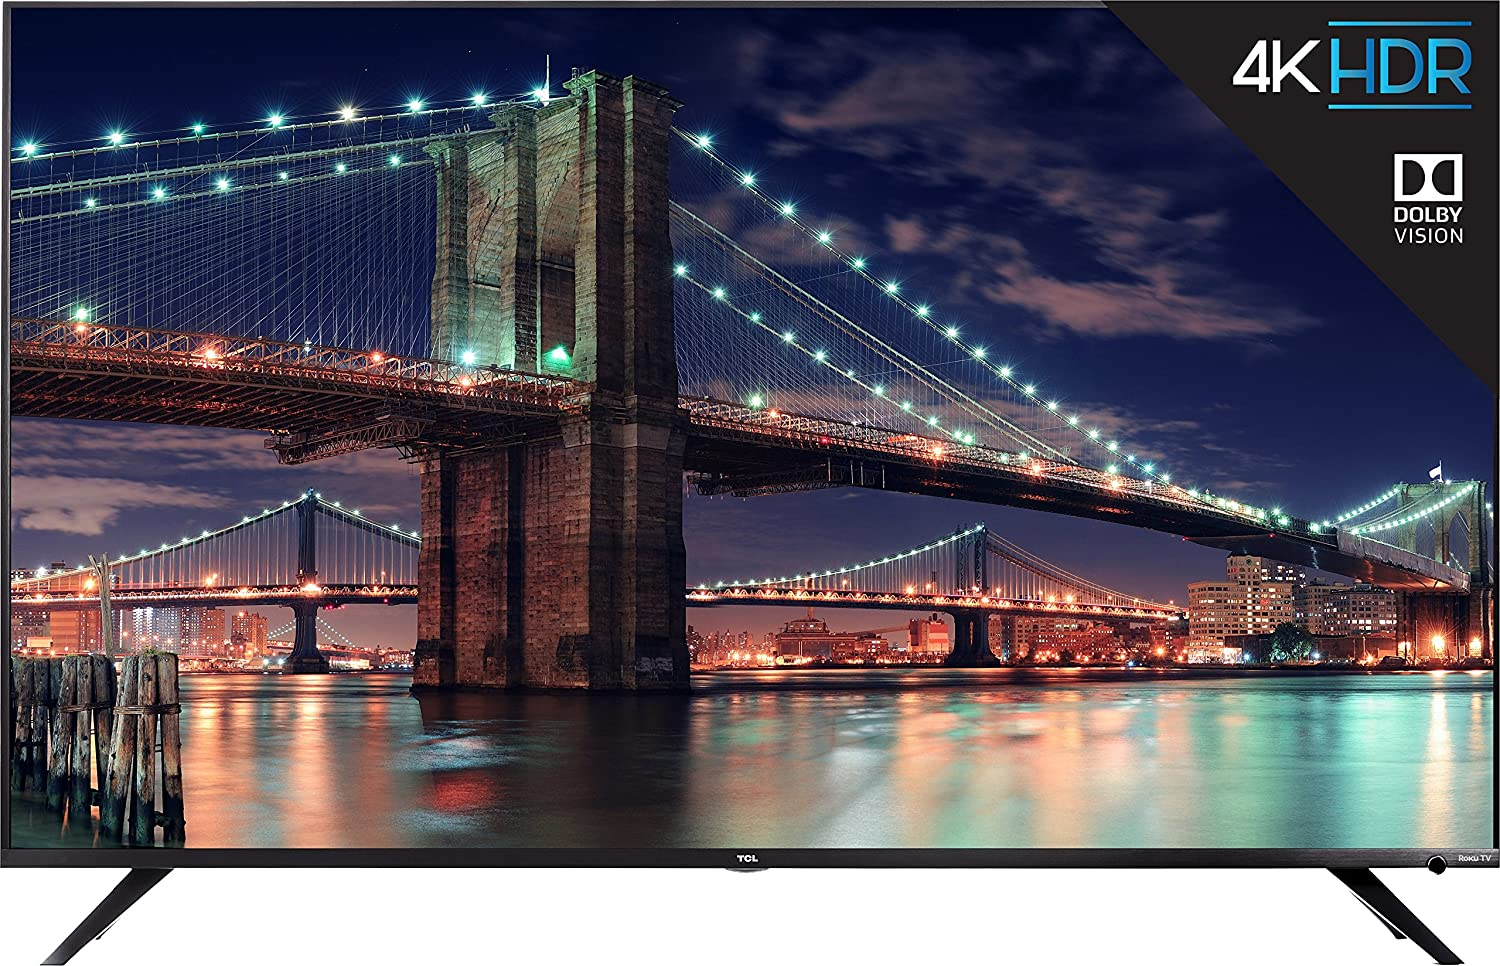 Best 65-Inch TV Reviews 4